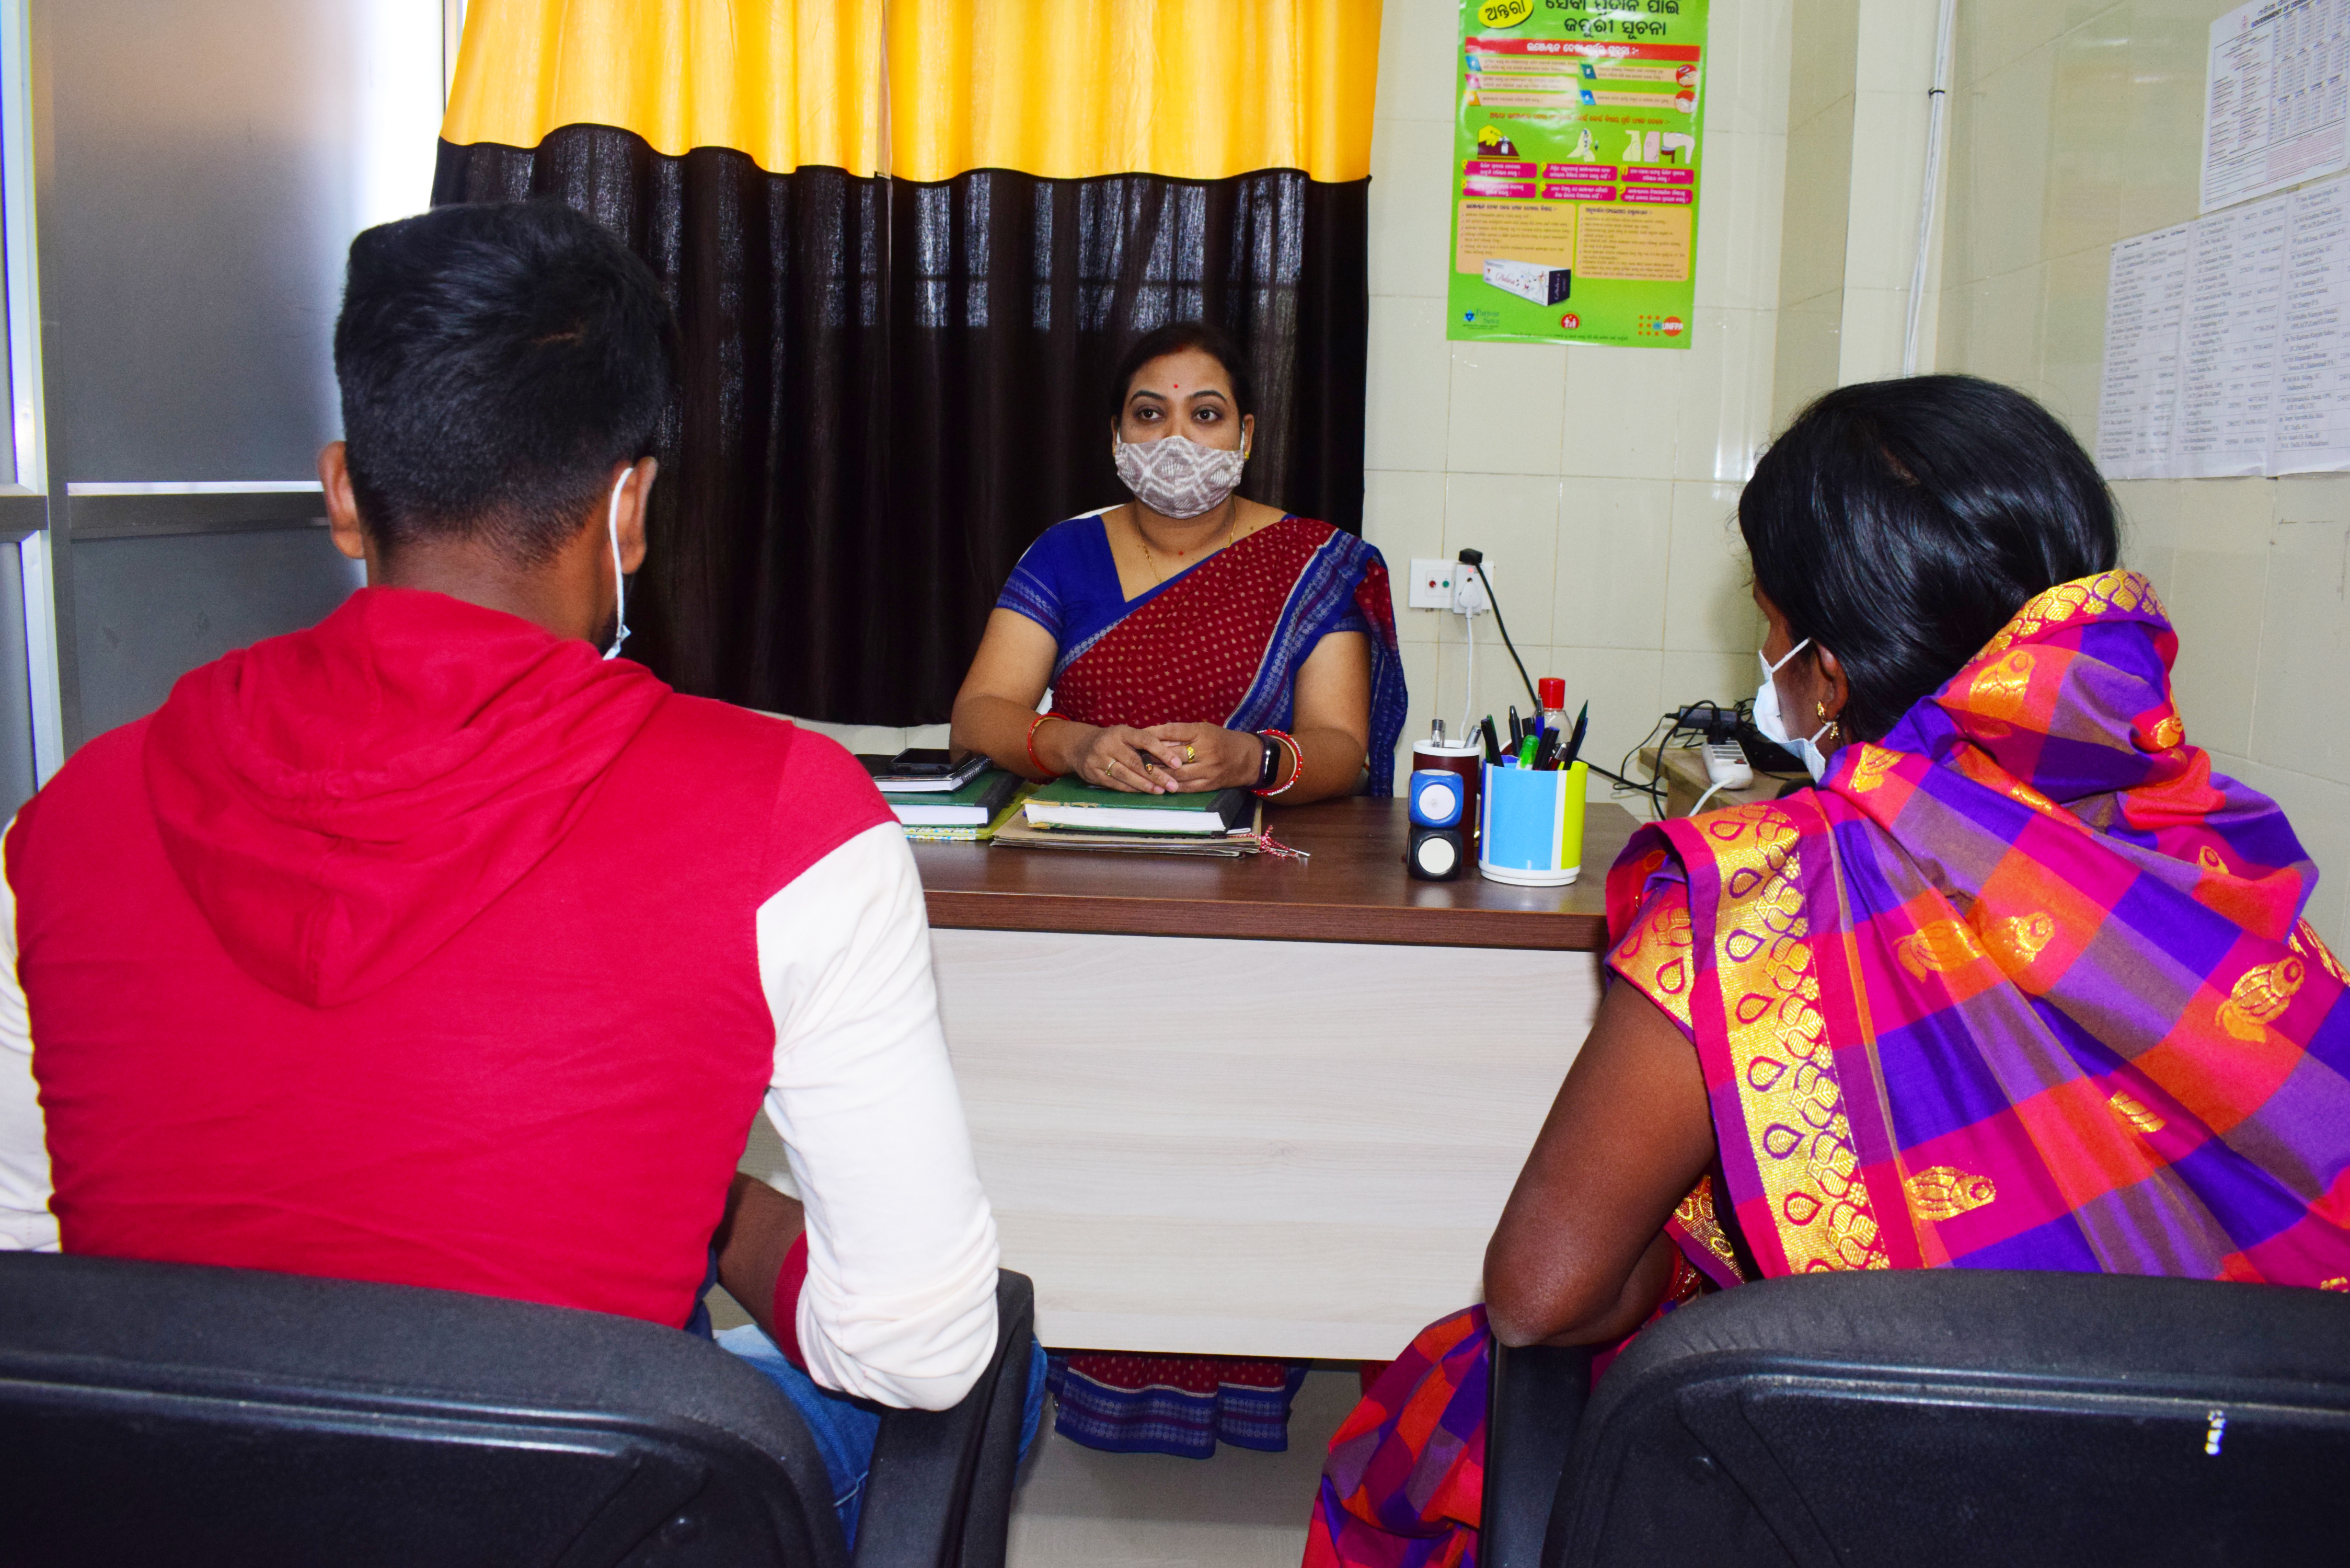 One of the healthcare workers trained to counsel speaks with clients at their office.